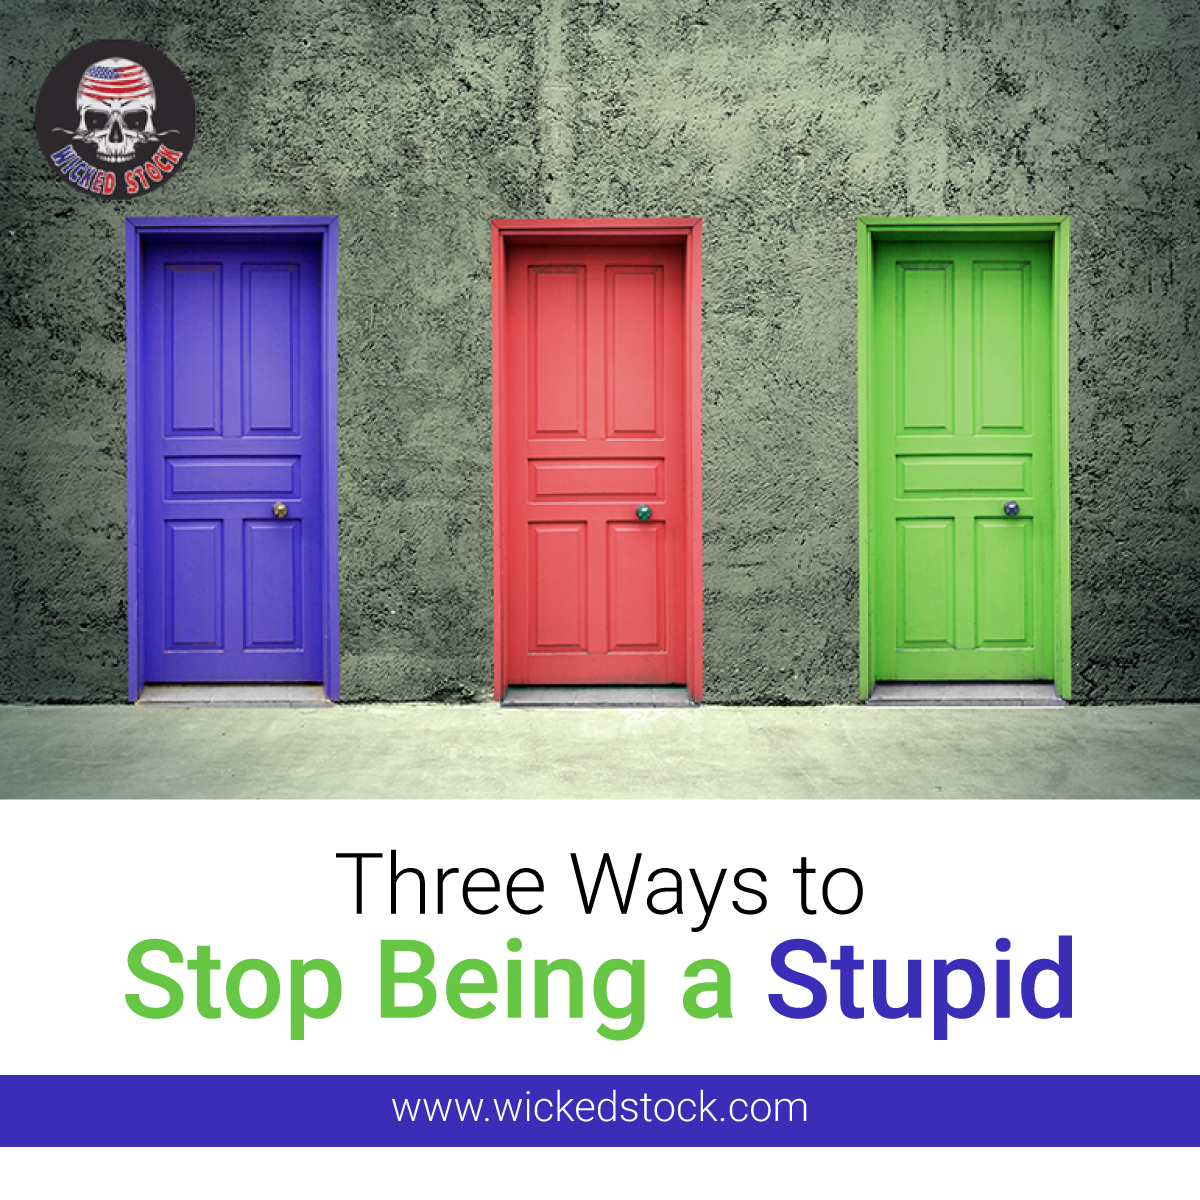 Three Ways to Stop Being a Stupid